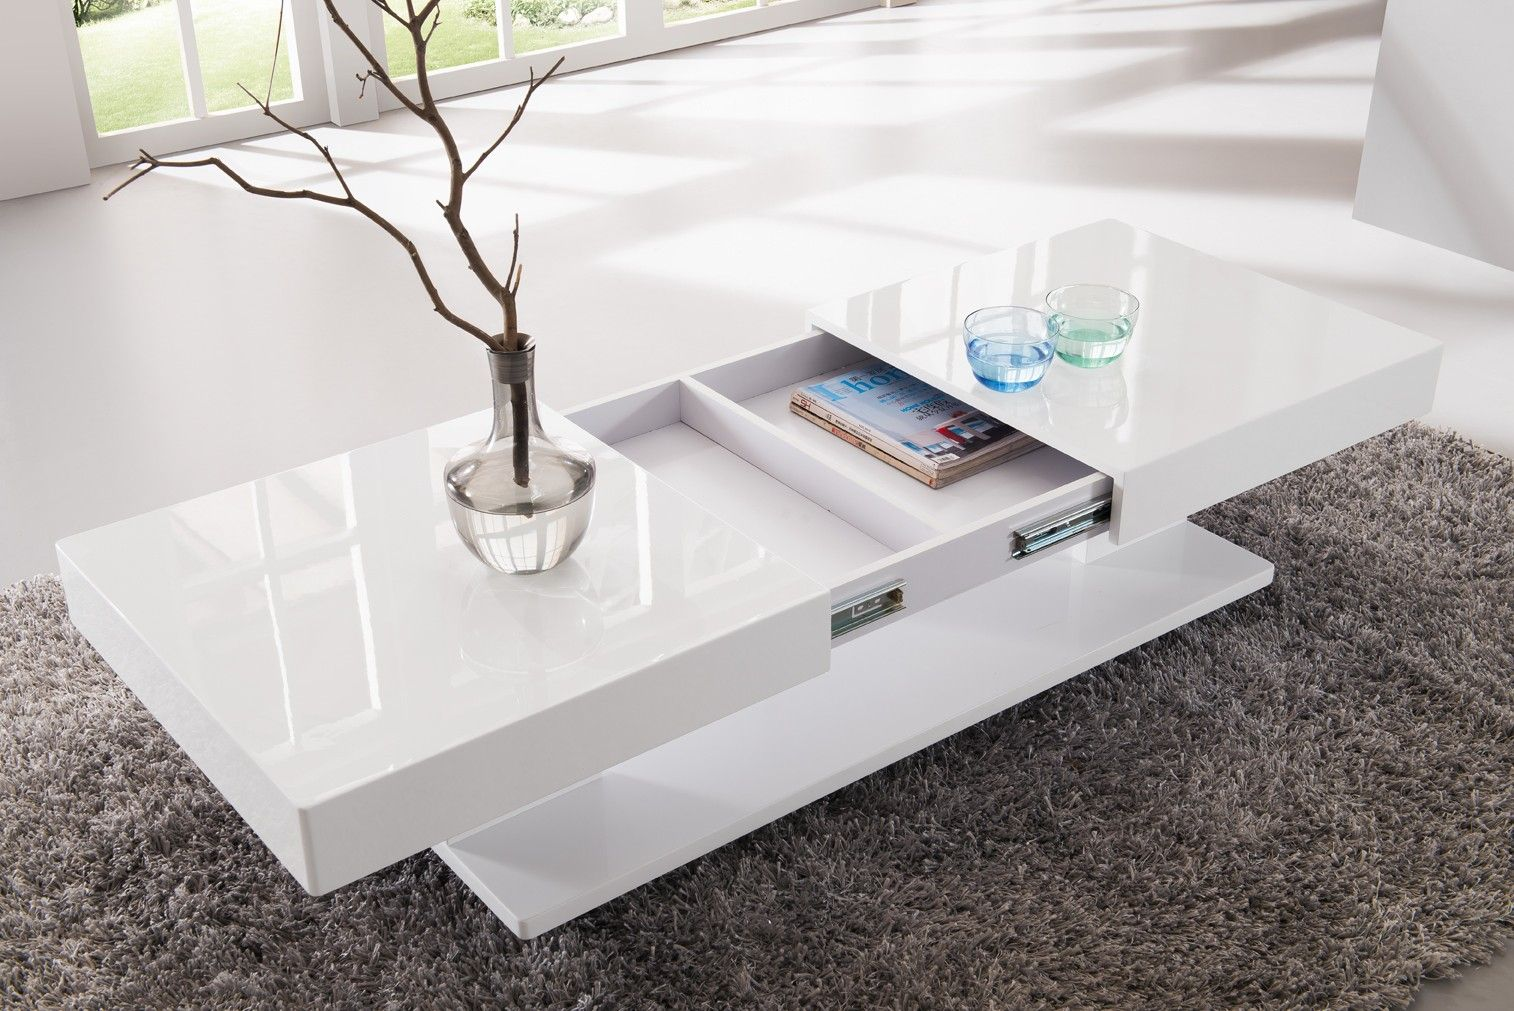 table basse design blanc laqu avec rangements et plateaux. Black Bedroom Furniture Sets. Home Design Ideas